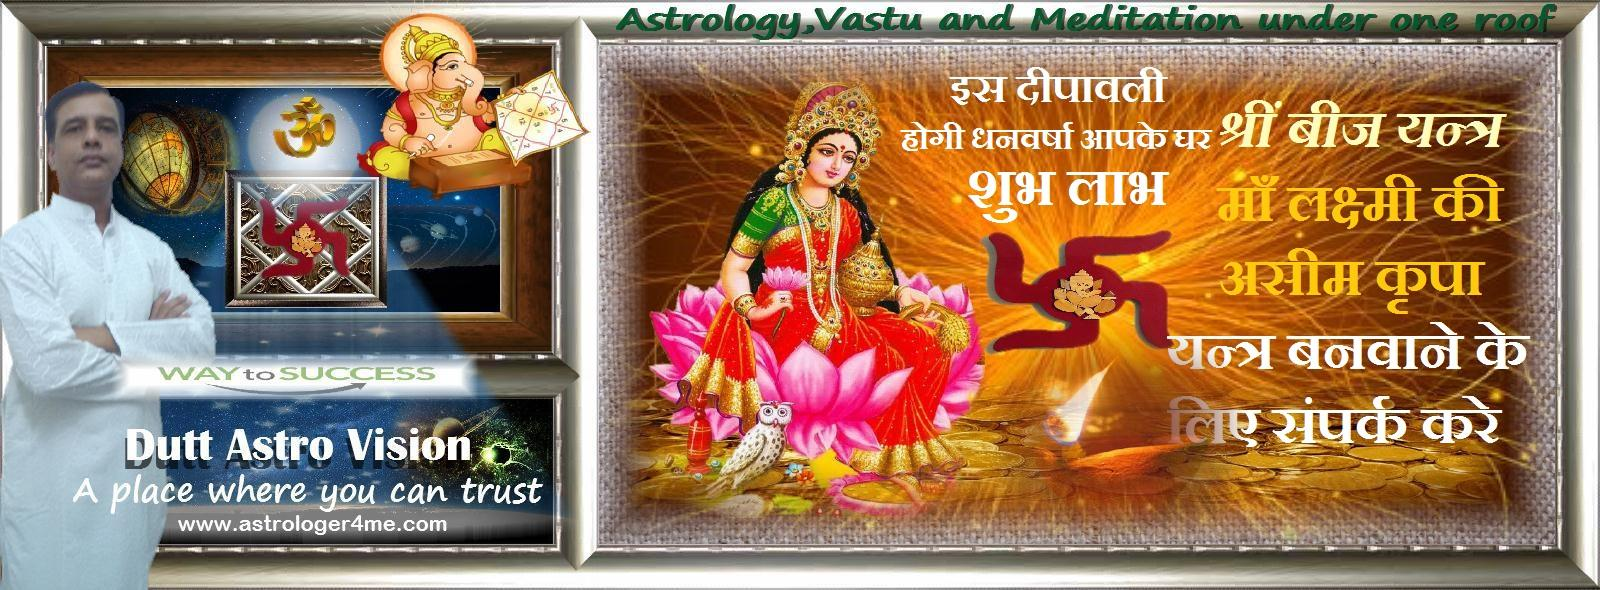 Contact Astrologer Parkash Dutt in Ludhiana to get Shreem Beej Yantra and Laxmi Kripa